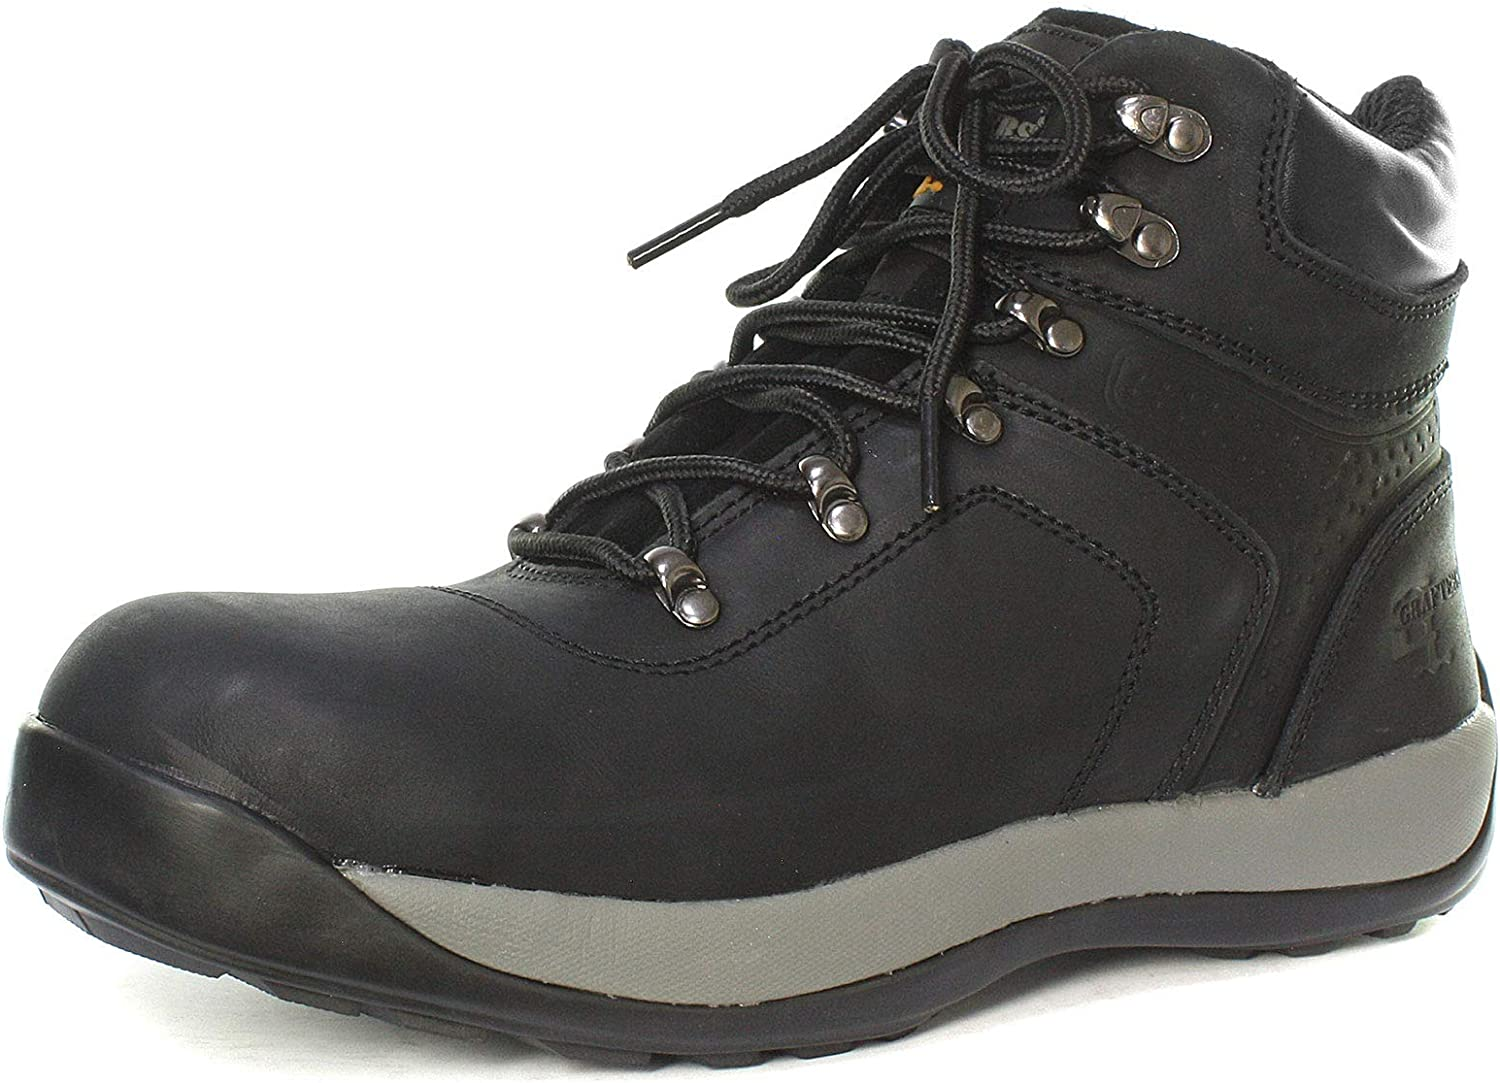 Grafters M868A Unisex Leather Ankle Safety Boots Black